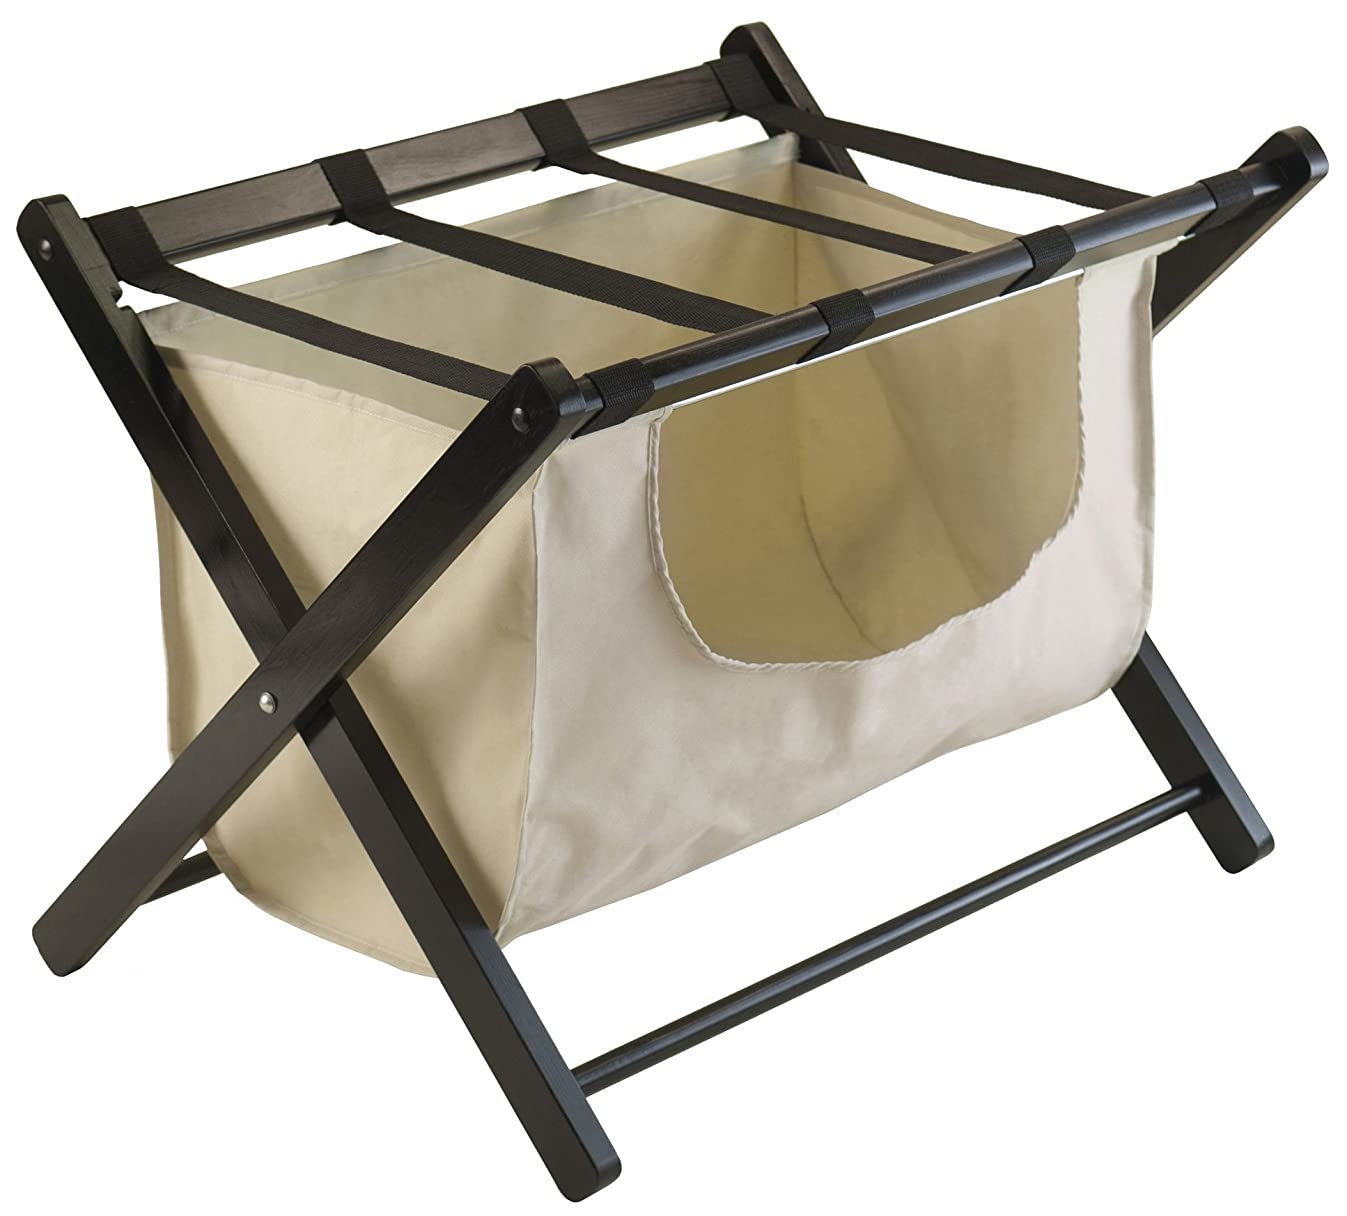 Winsome Wood Dora Luggage Rack with Removable Fabric Basket